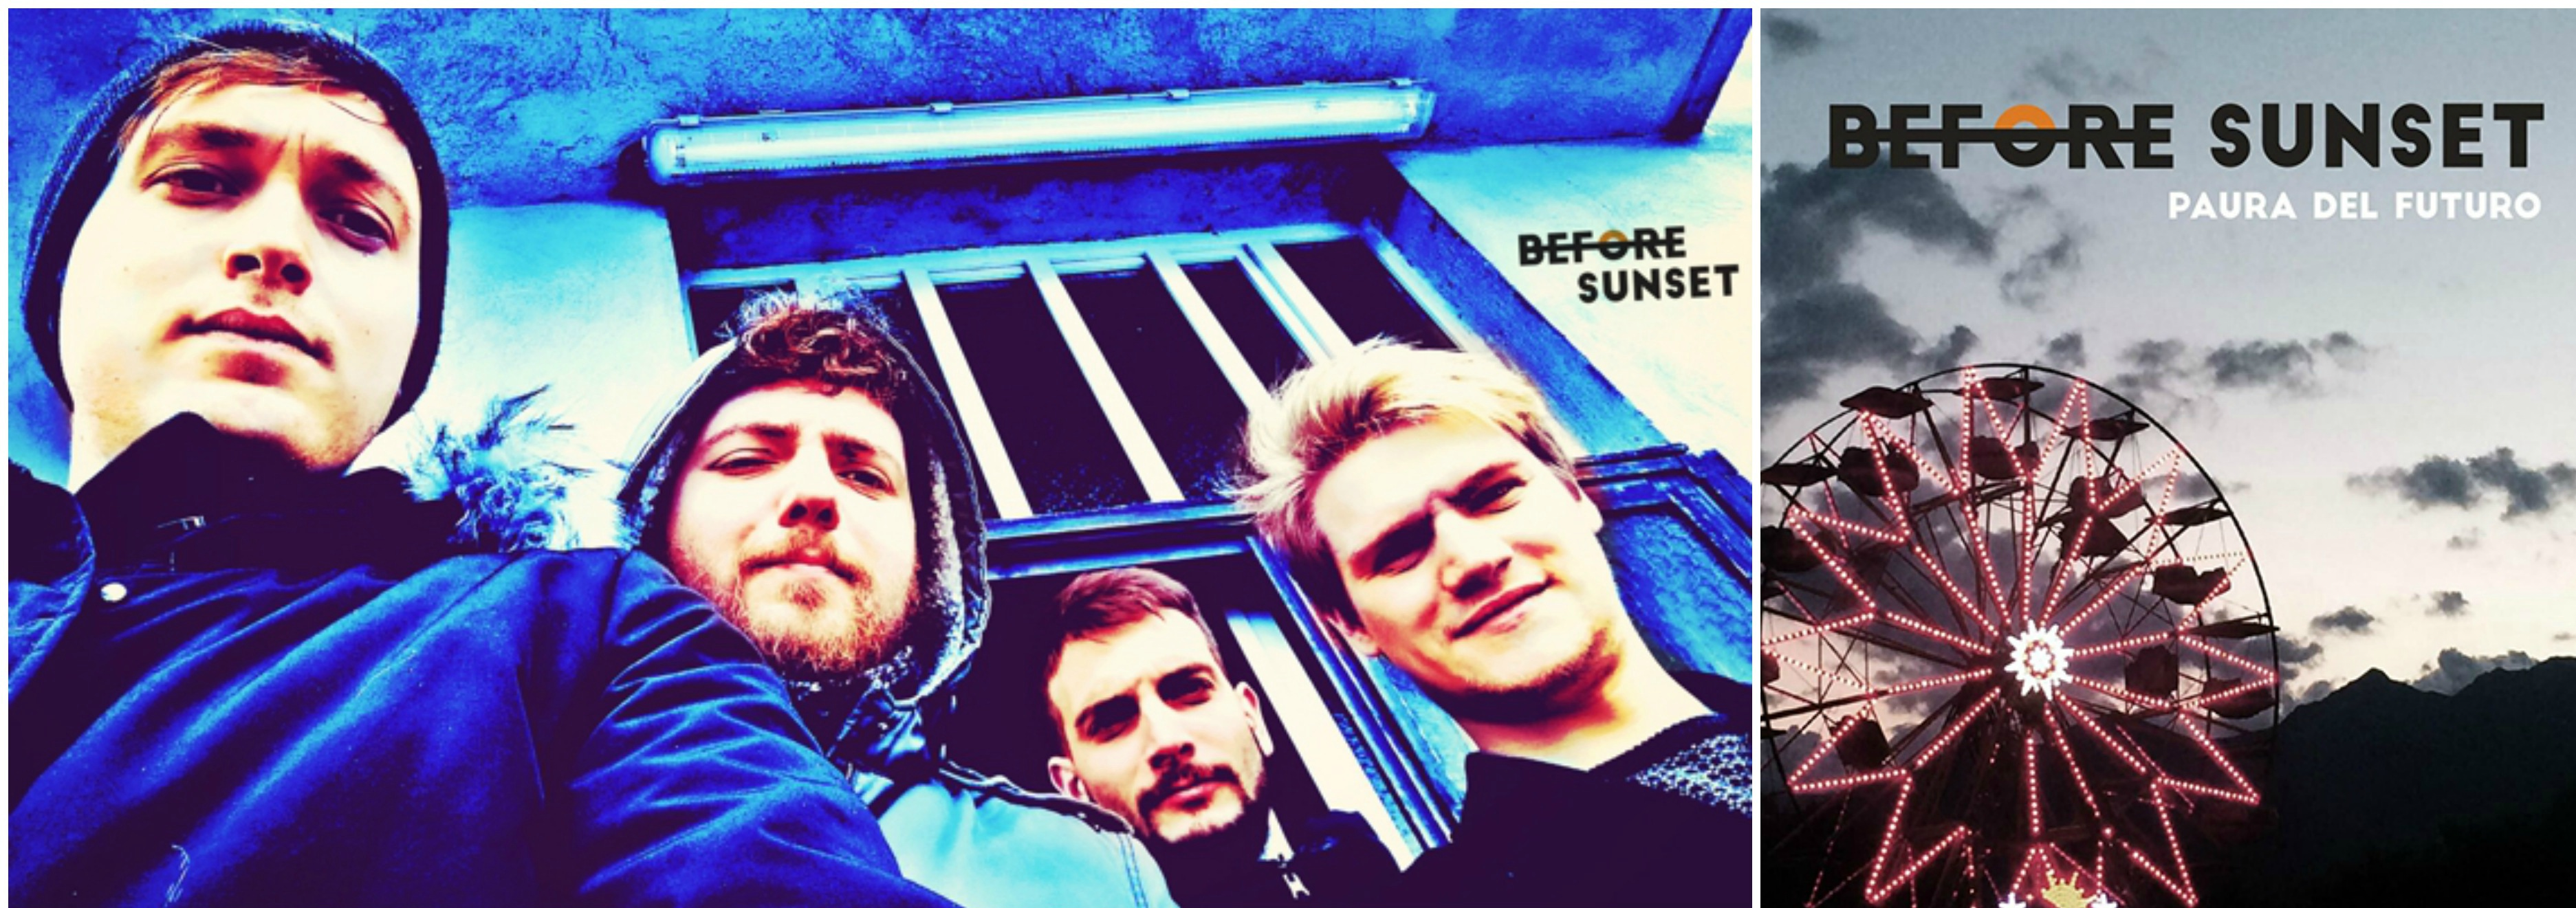 Before Sunset – Paura del futuro (InLoop Music / NML New Model Label cd 2018) soft punk rock per affermare che non avrete mai la nostra insicurezza